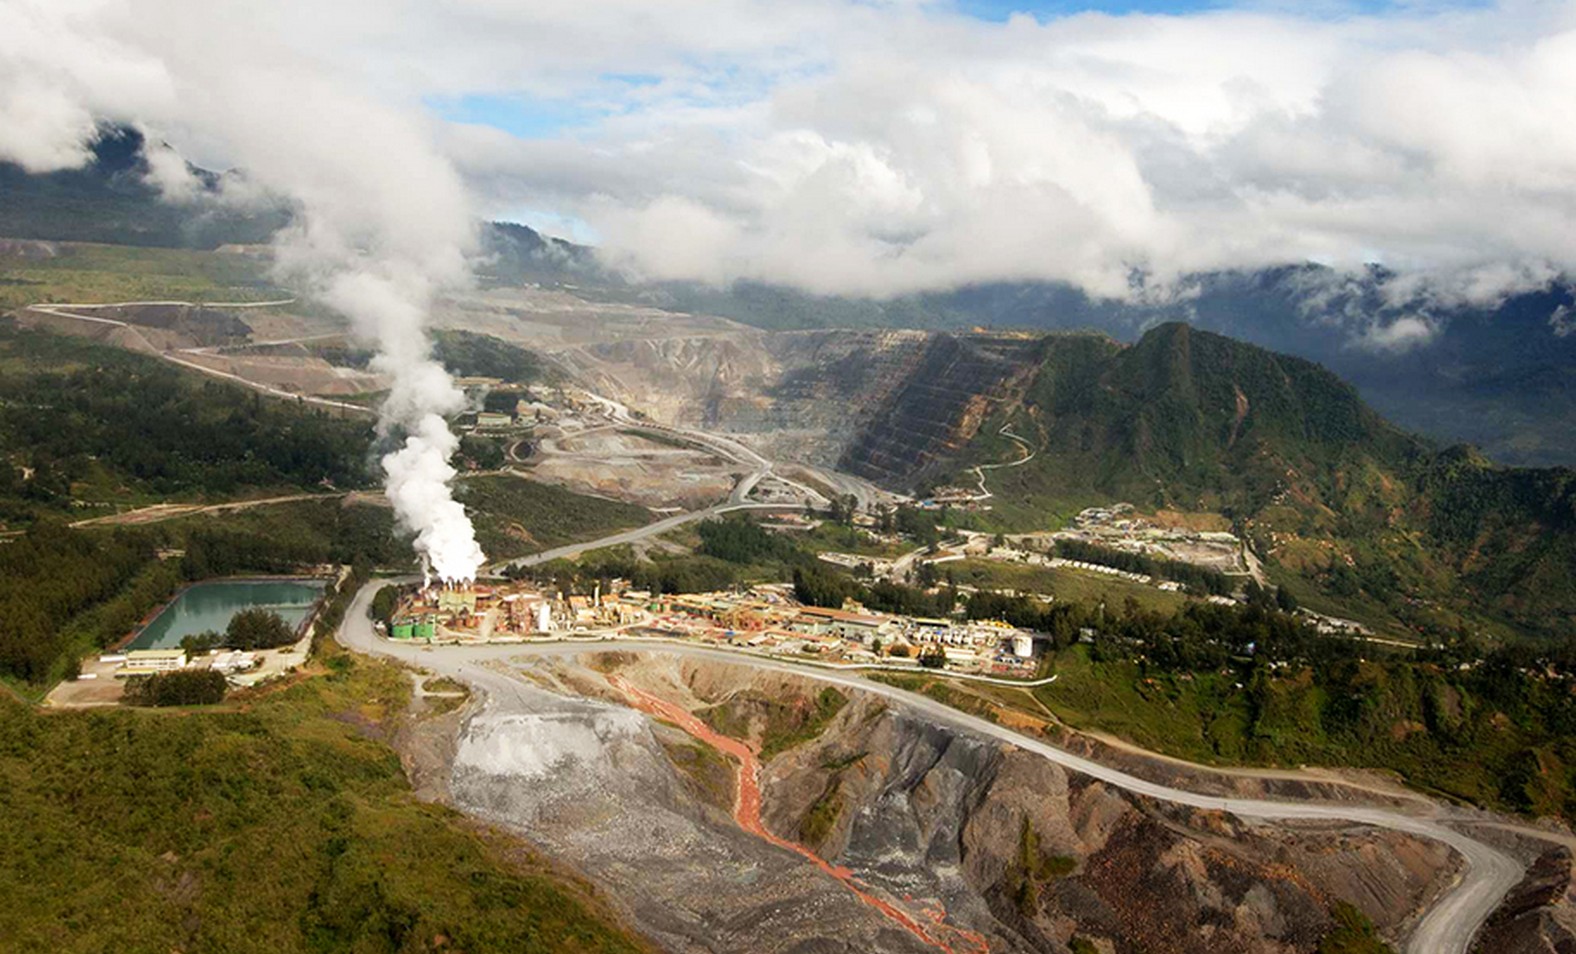 Barrick Gold, Porgera mine, Papua new Guinea, human rights